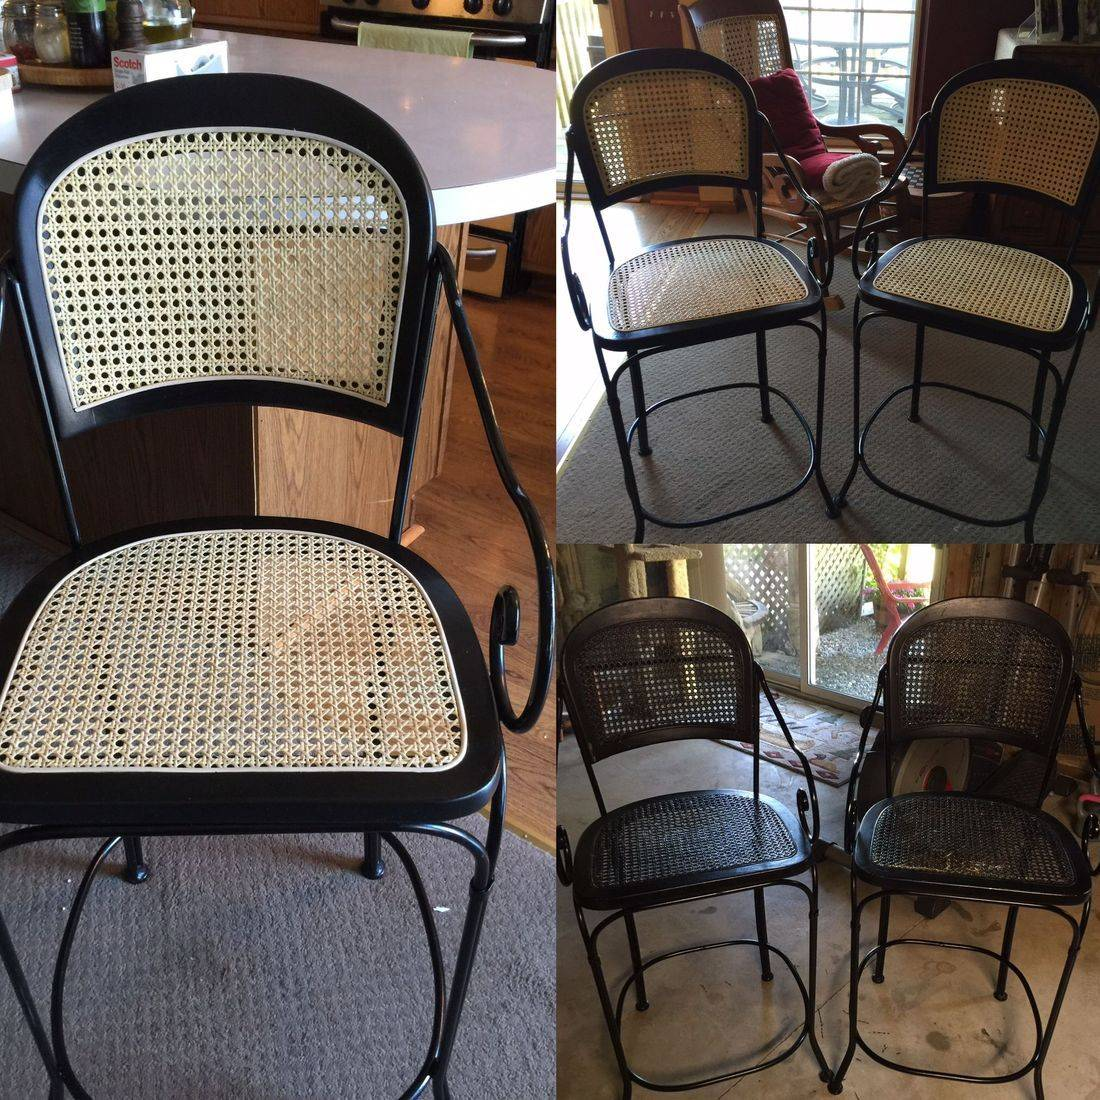 Wrought Iron and Pressed Cane Bar Stools done by Hank's Cane & Rush Restoration